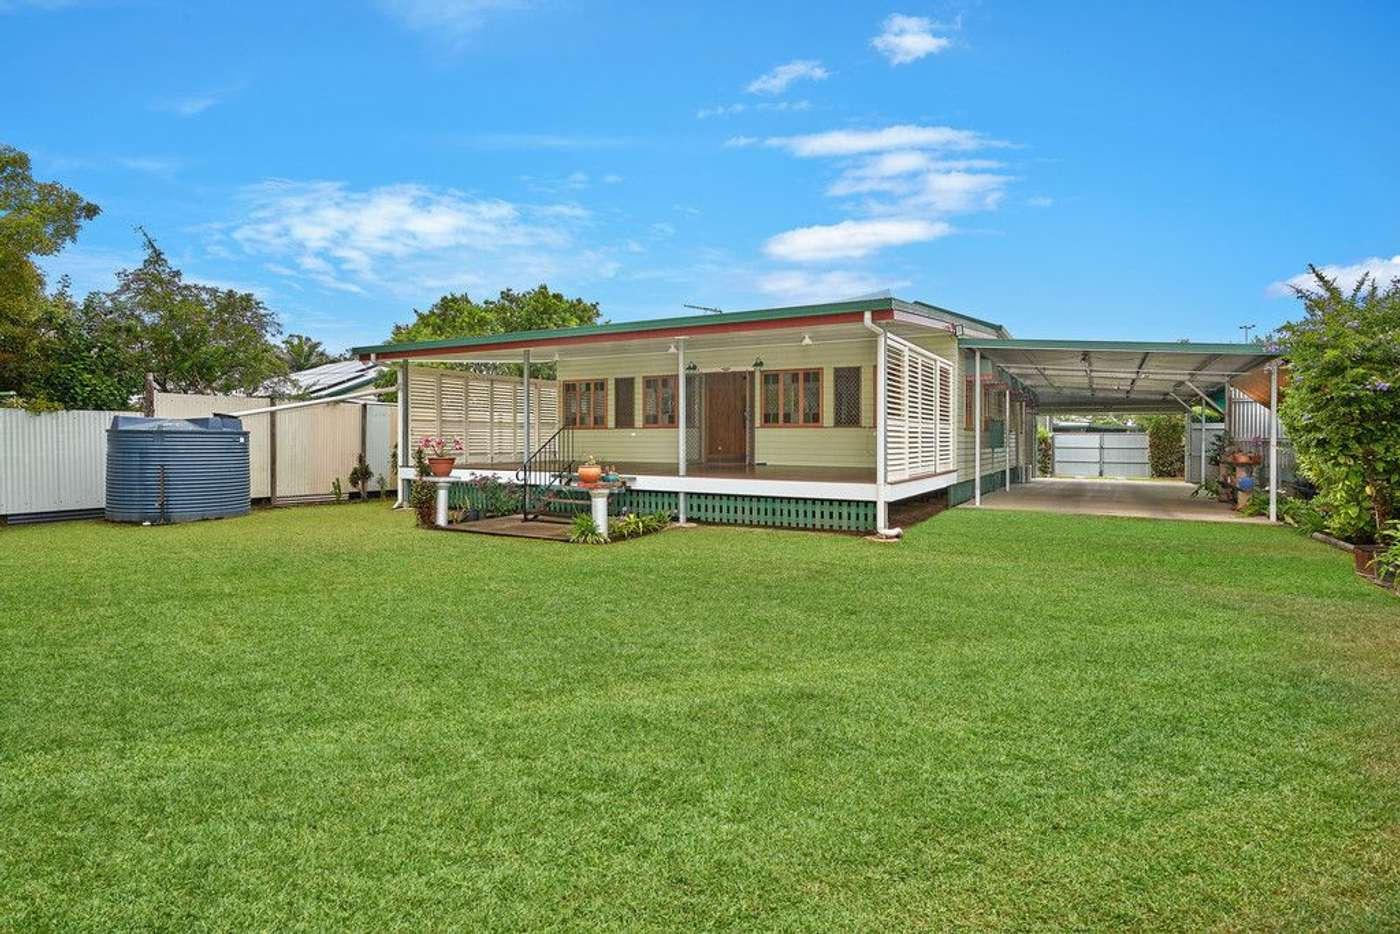 Main view of Homely house listing, 14 Healy Street, Gordonvale QLD 4865